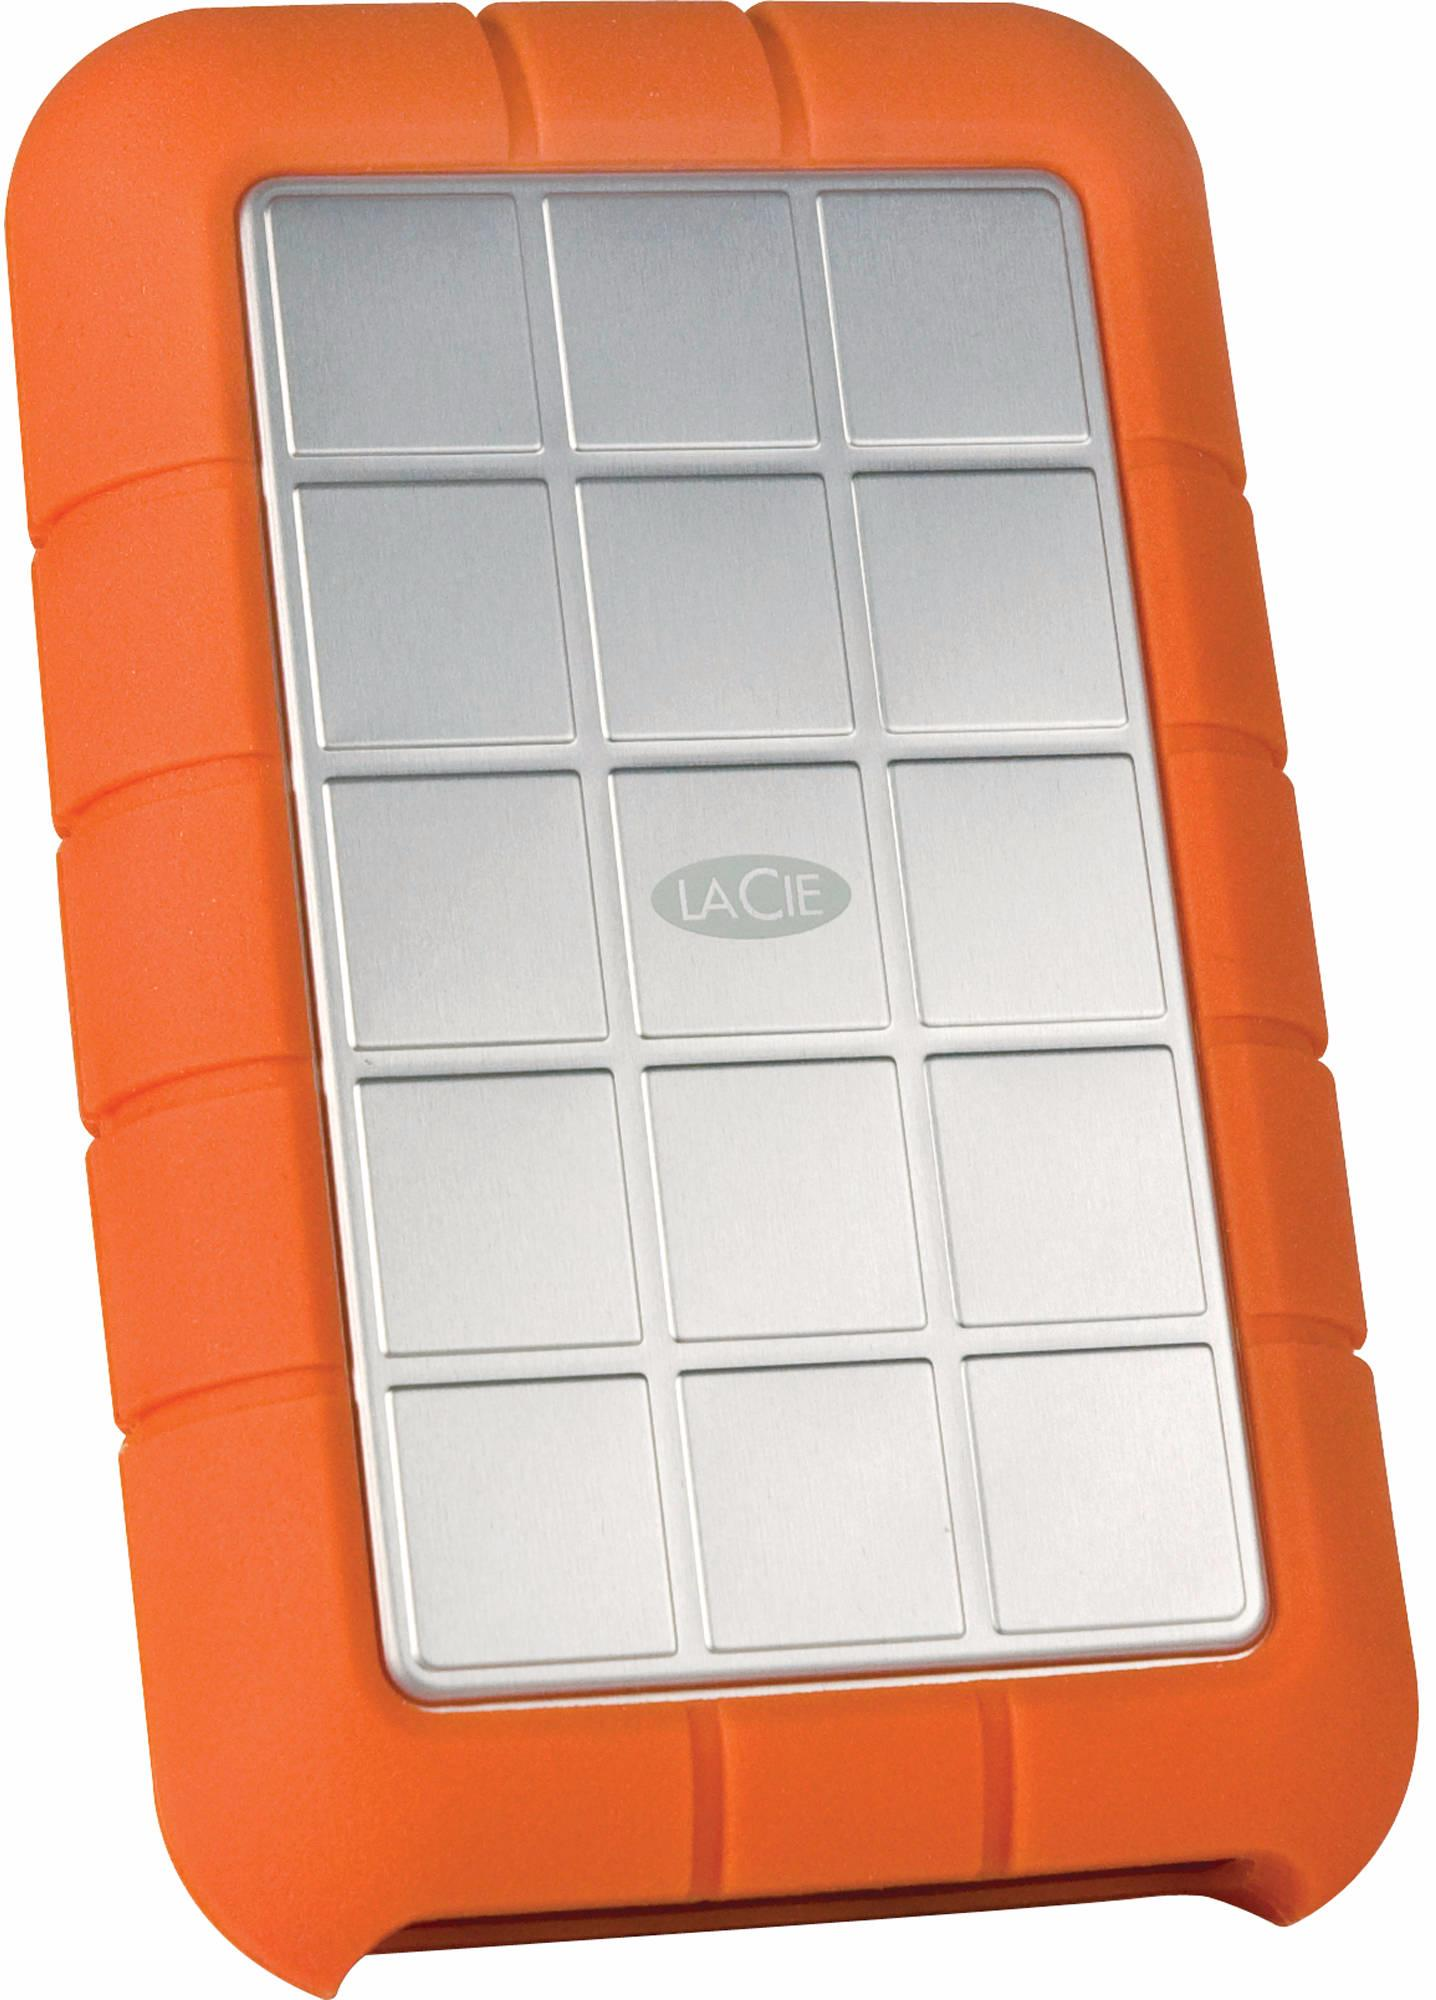 Lacie Rugged Triple 1TB FireWire 800/USB 3.0 (STEU1000400) - внешний жесткий диск (Orange)